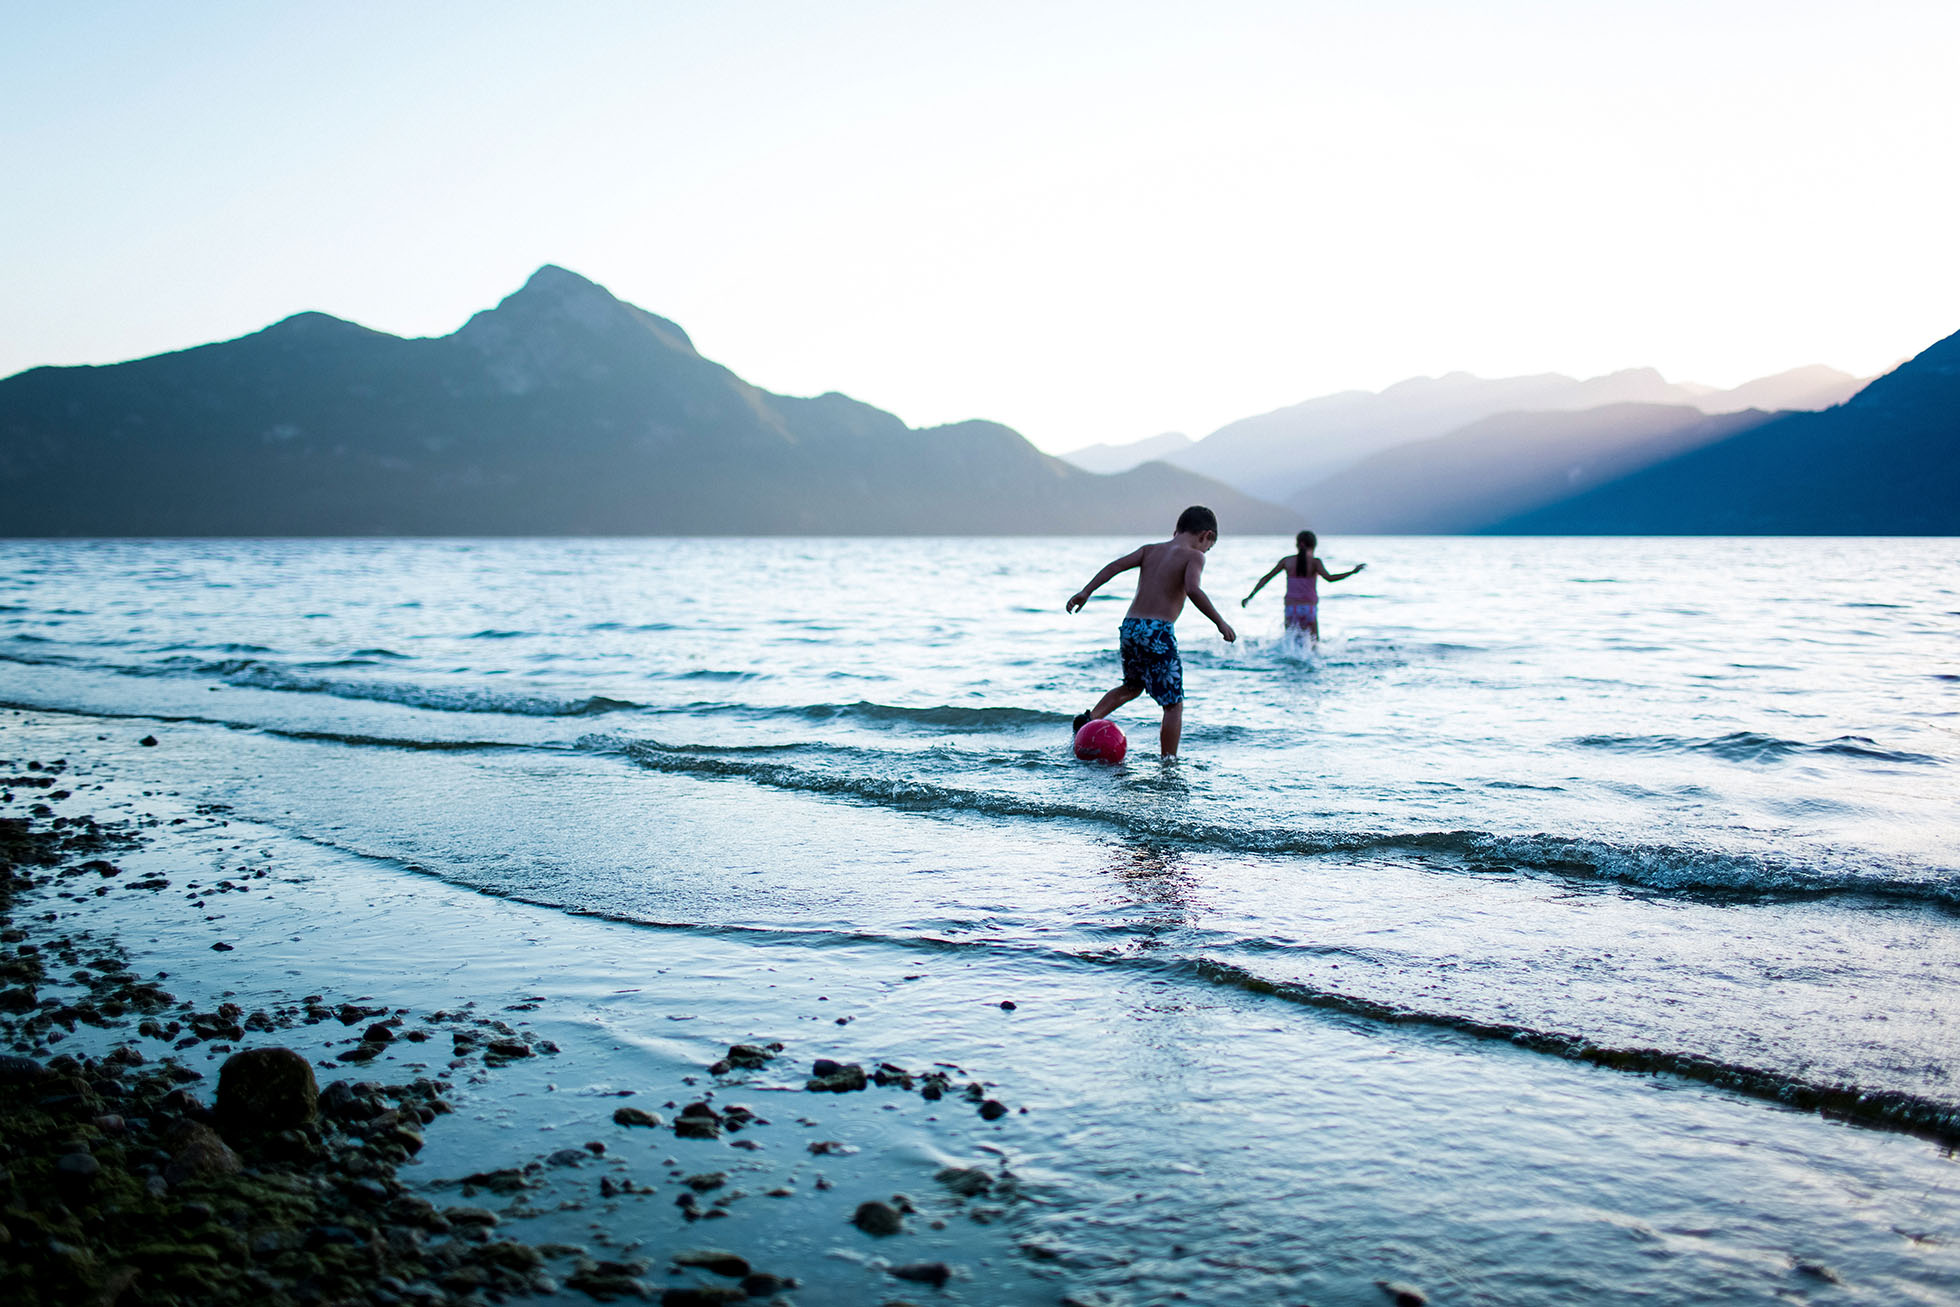 Two children playing in the ocean with a mountain backdrop.